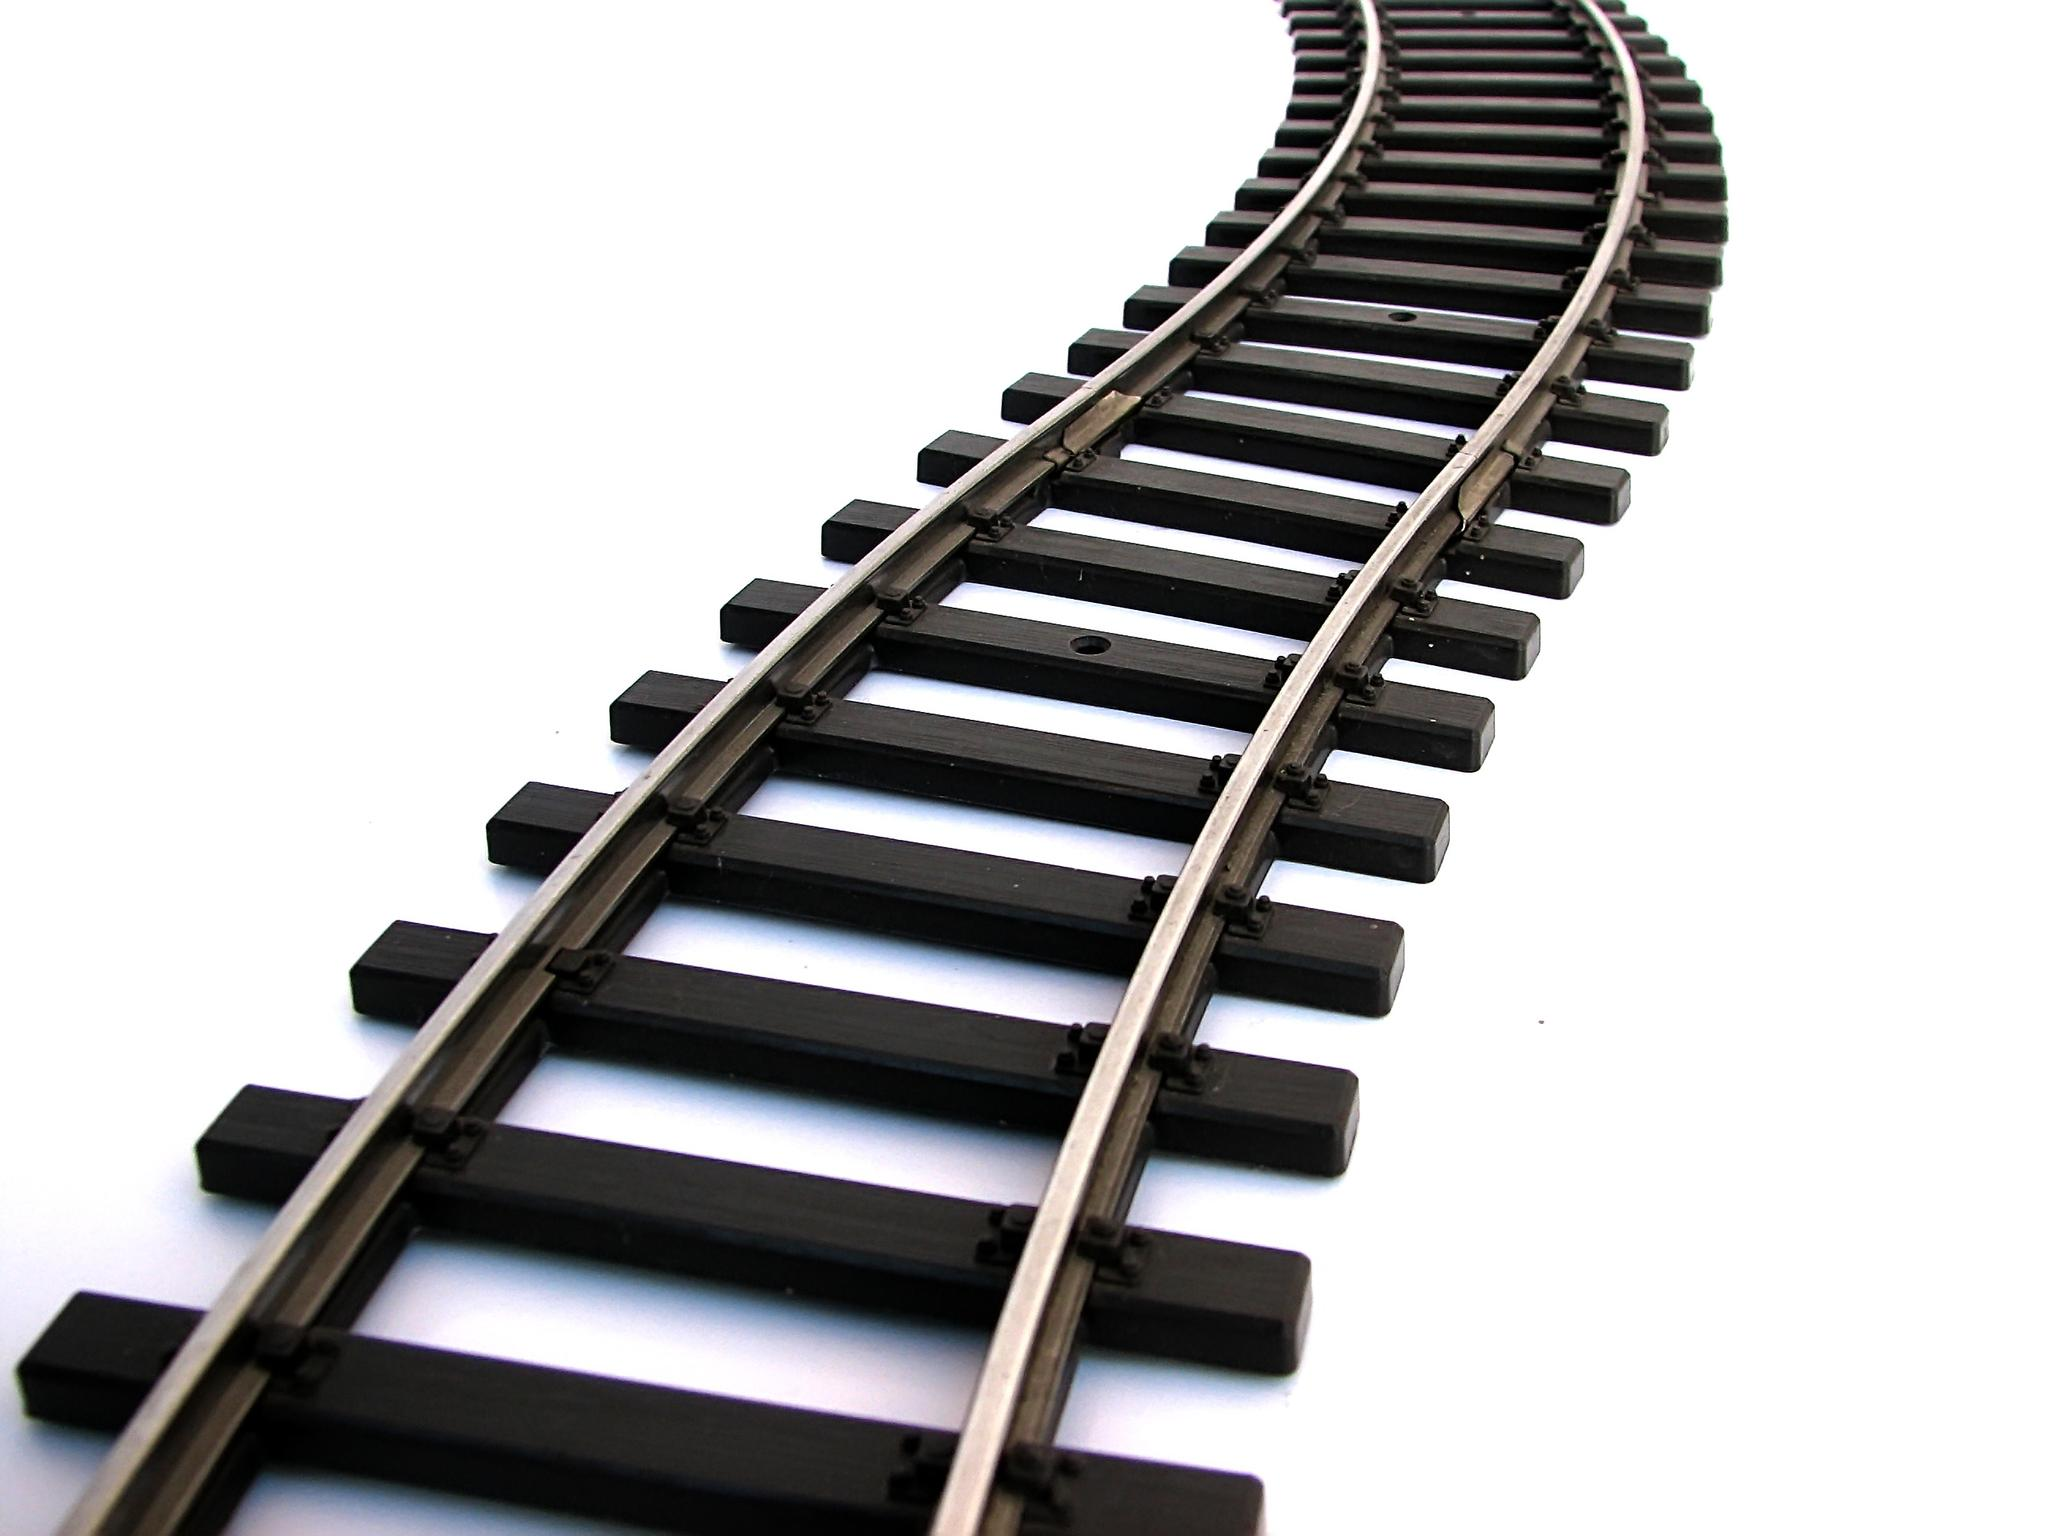 Train Tracks Cartoon - ClipArt Best